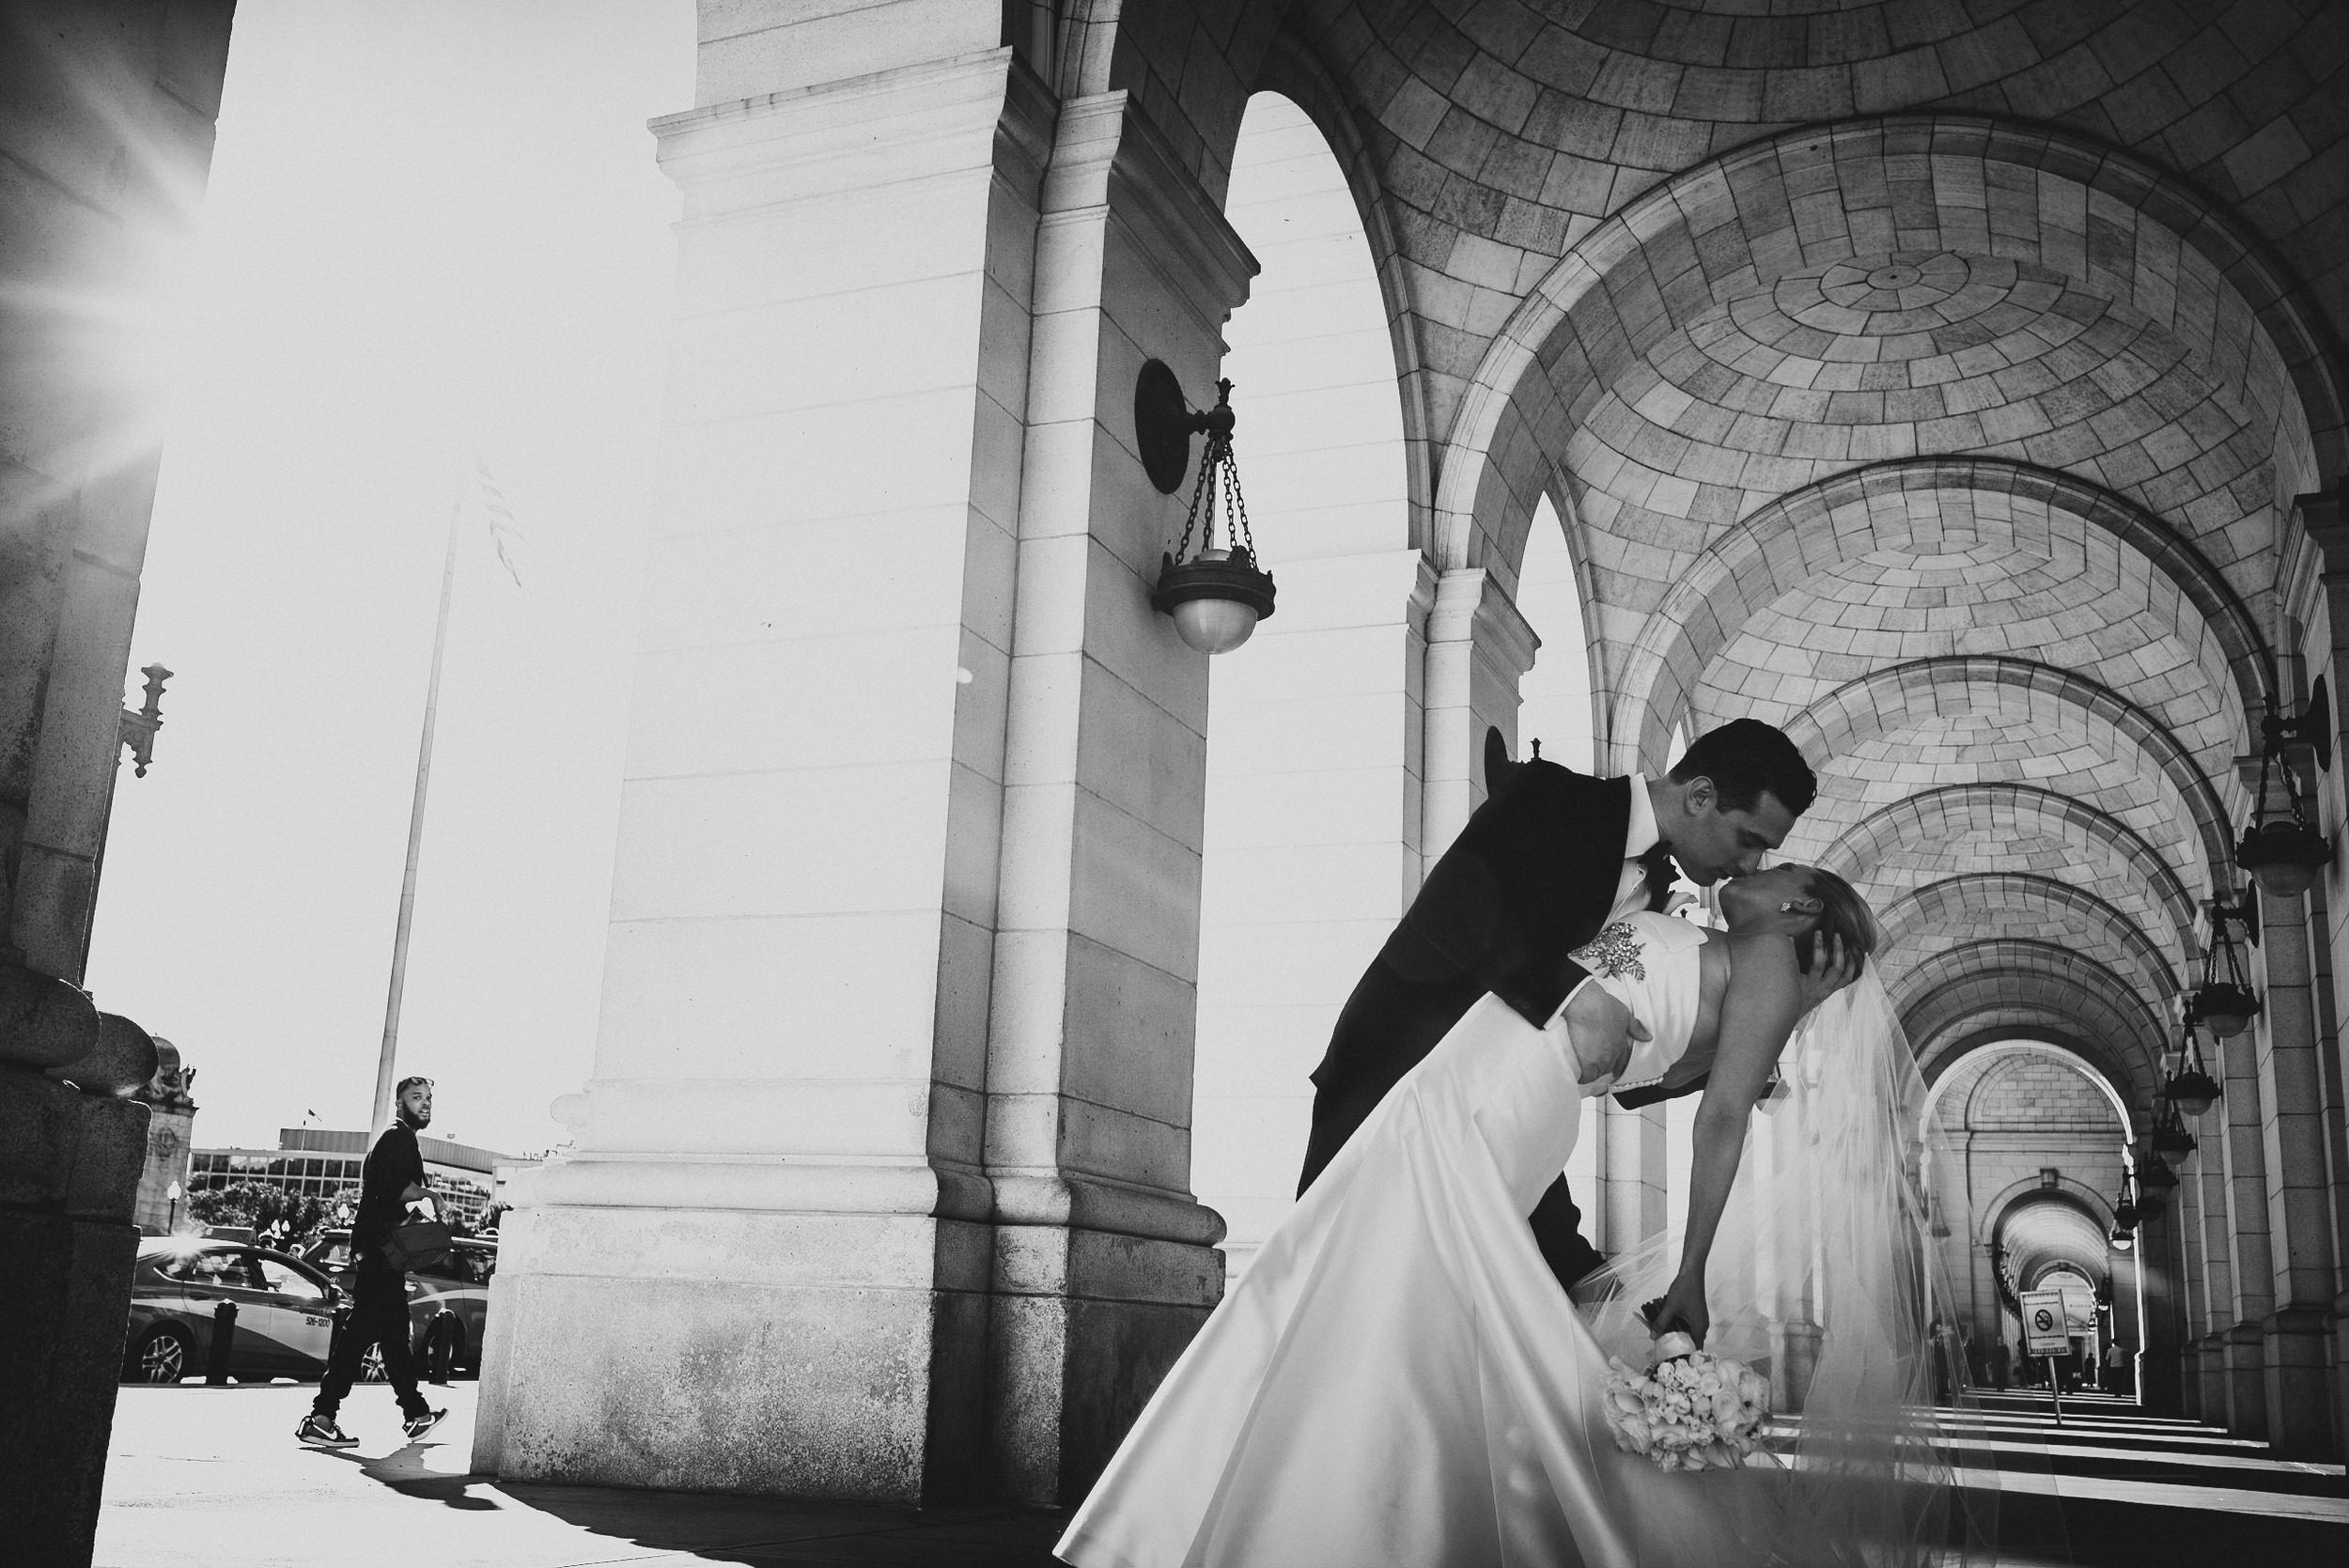 Wedding at National Museum of Women in the Arts by Photographer Mantas Kubilinskas-15.jpg